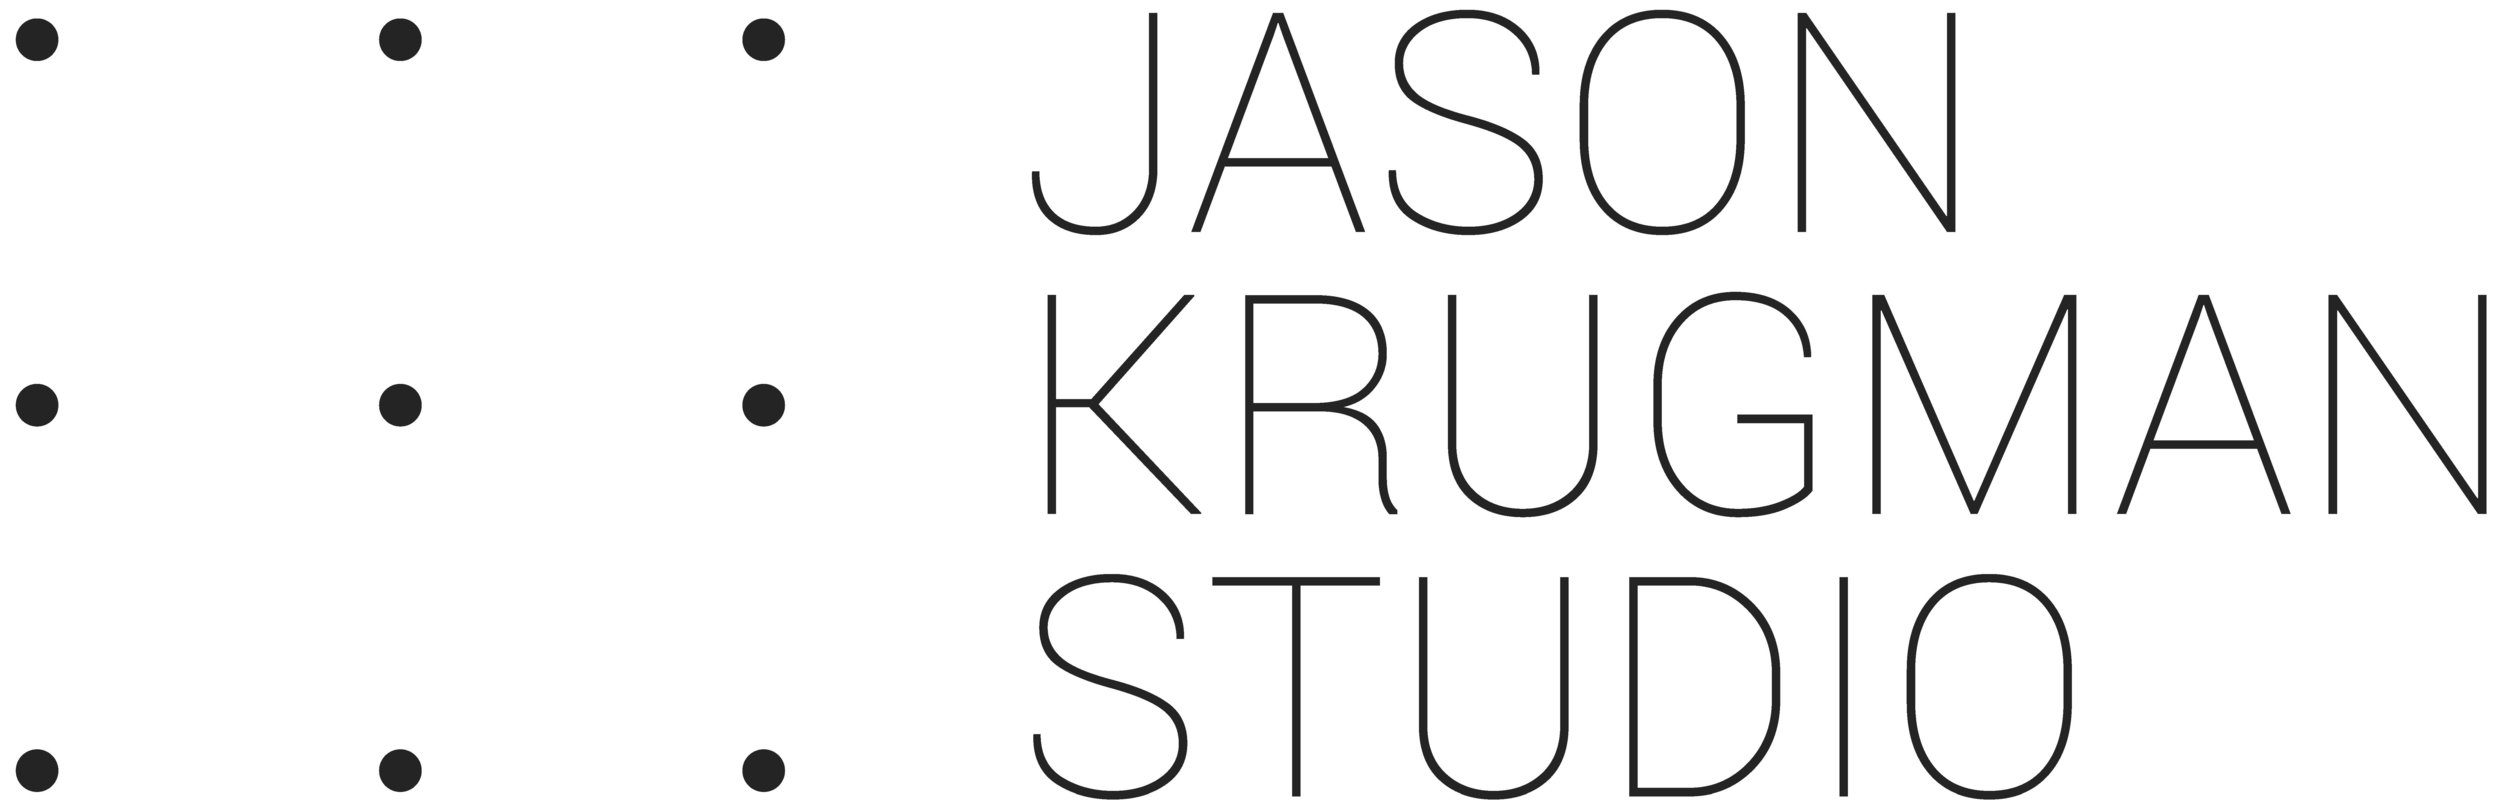 Jason Krugman Studio - Jason Krugman attended Tufts University and studied Economics and Fine Arts. After graduating, Krugman struggled to imagine a career as a fine artist and instead focused on economics and later finance. He worked at Goldman Sachs and Merrill Lynch processing structured credit trades prior to the financial collapse. In early 2007, with no inkling of the impending calamity, Krugman returned to school to study technology and art. Inspired by the burgeoning use of electricity and code to create interactive art, he enrolled at the Interactive Telecommunications Program (ITP) at NYU. Krugman learned about microcontrollers, soldering, digital fabrication and new materials. His thesis at ITP, a wind sensitive LED array, was blogged about by Kanye West which in turn got him his first commercial commission, making a larger, more portable version to show at several large music festivals. Krugman soon after began receiving inquiries to make permanent LED installations for buildings and people's homes. Today, Krugman's practice is still based around the design and execution of new types of LED artworks. He has developed a hand-soldered LED mesh, several cable systems, and a variety of custom printed circuit boards for LED artworks. He specializes in arranging electricity and lights in 3-dimensional space. His sculptures often use their physical structure to conduct electricity to the light sources. This eliminates most of the insulated wiring and connectors allowing thousands of lights to sit softly among minimal wire forms.